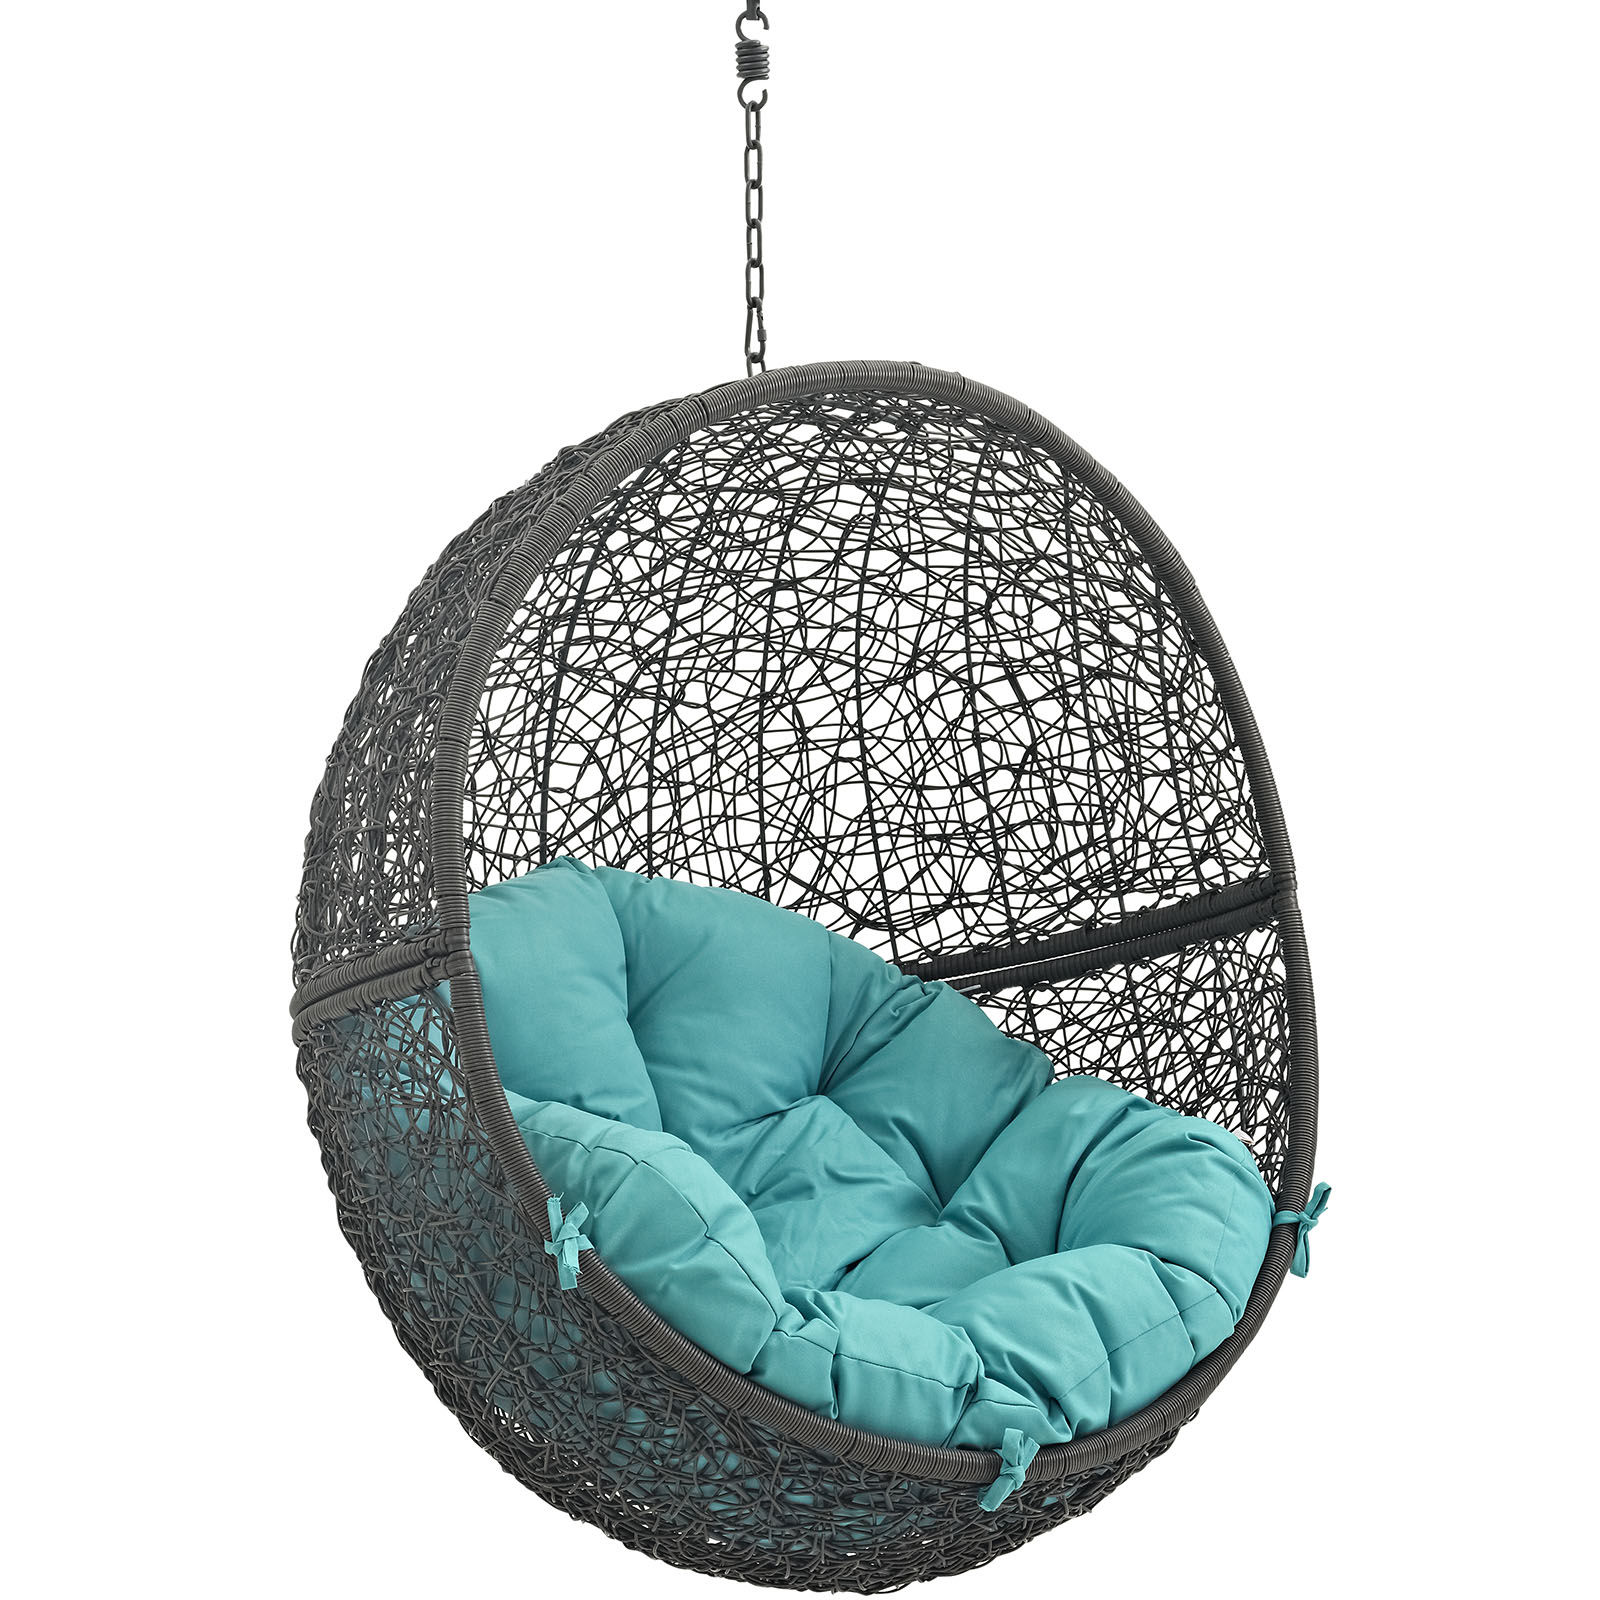 Modway Furniture Hide Gray Turquoise Outdoor Swing Chair